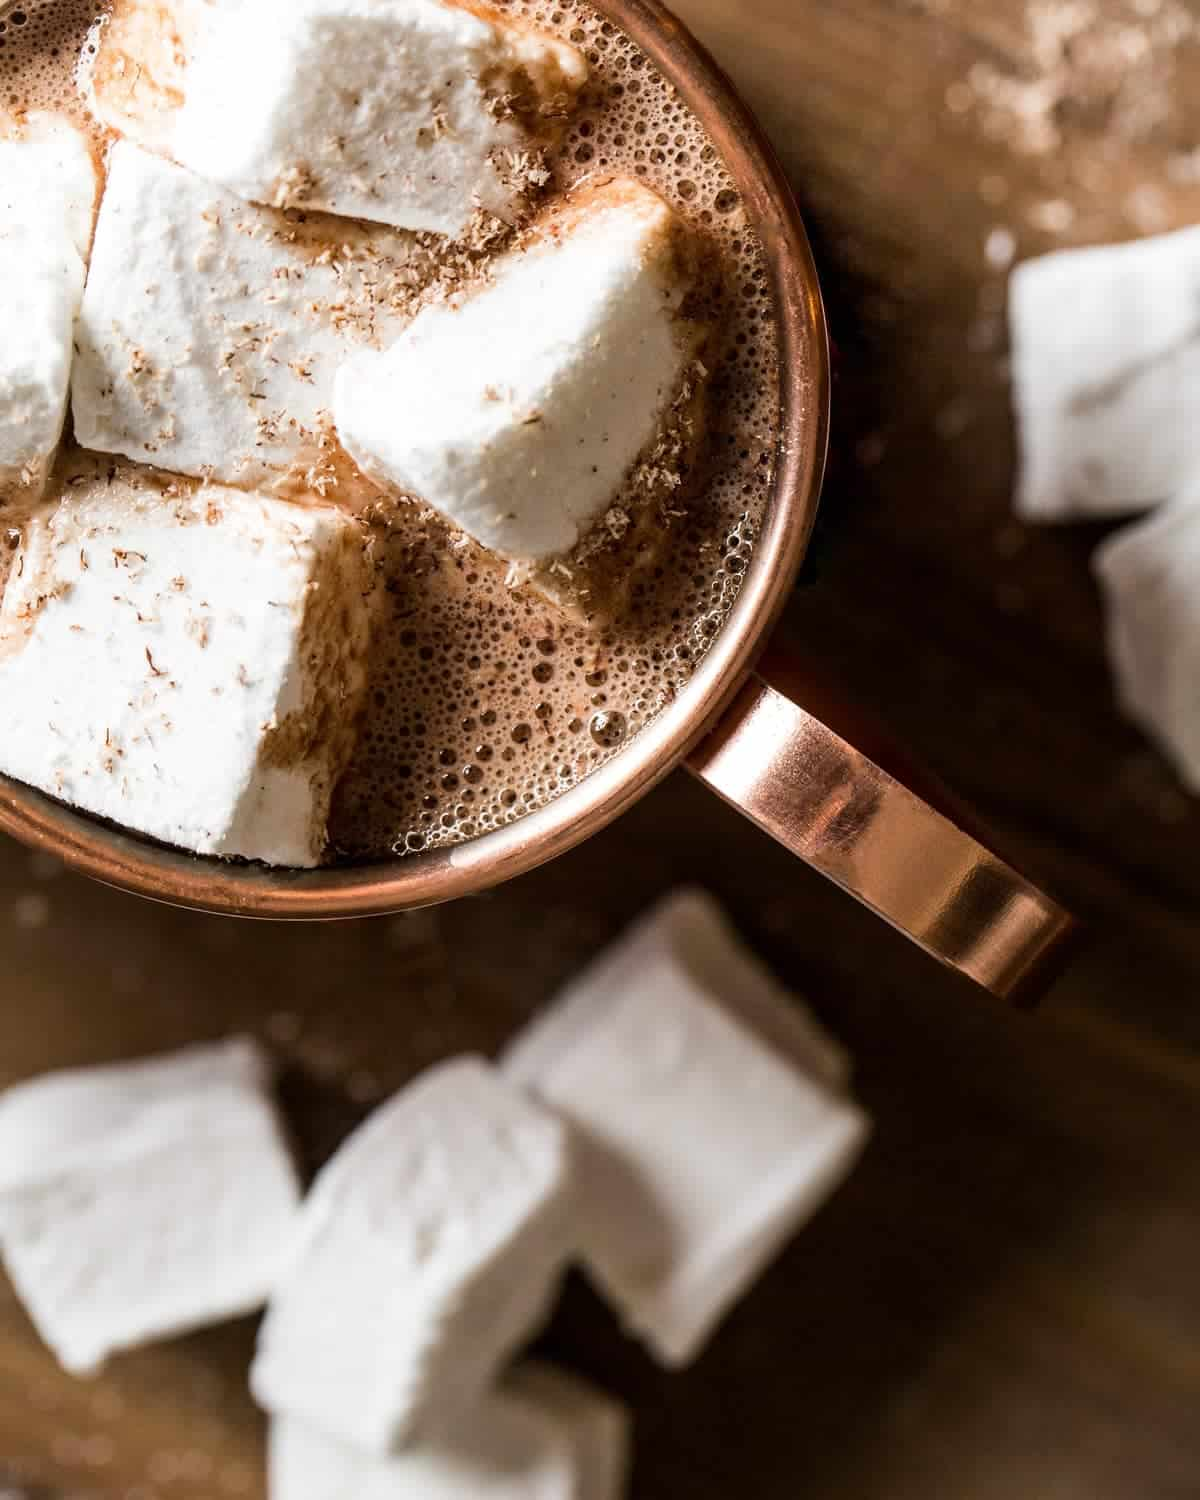 homemade-marshmallows-recipe-fluffy-sweet-and-so-easy-hot-cocoa-little-rusted-ladle-food-photography-web-8